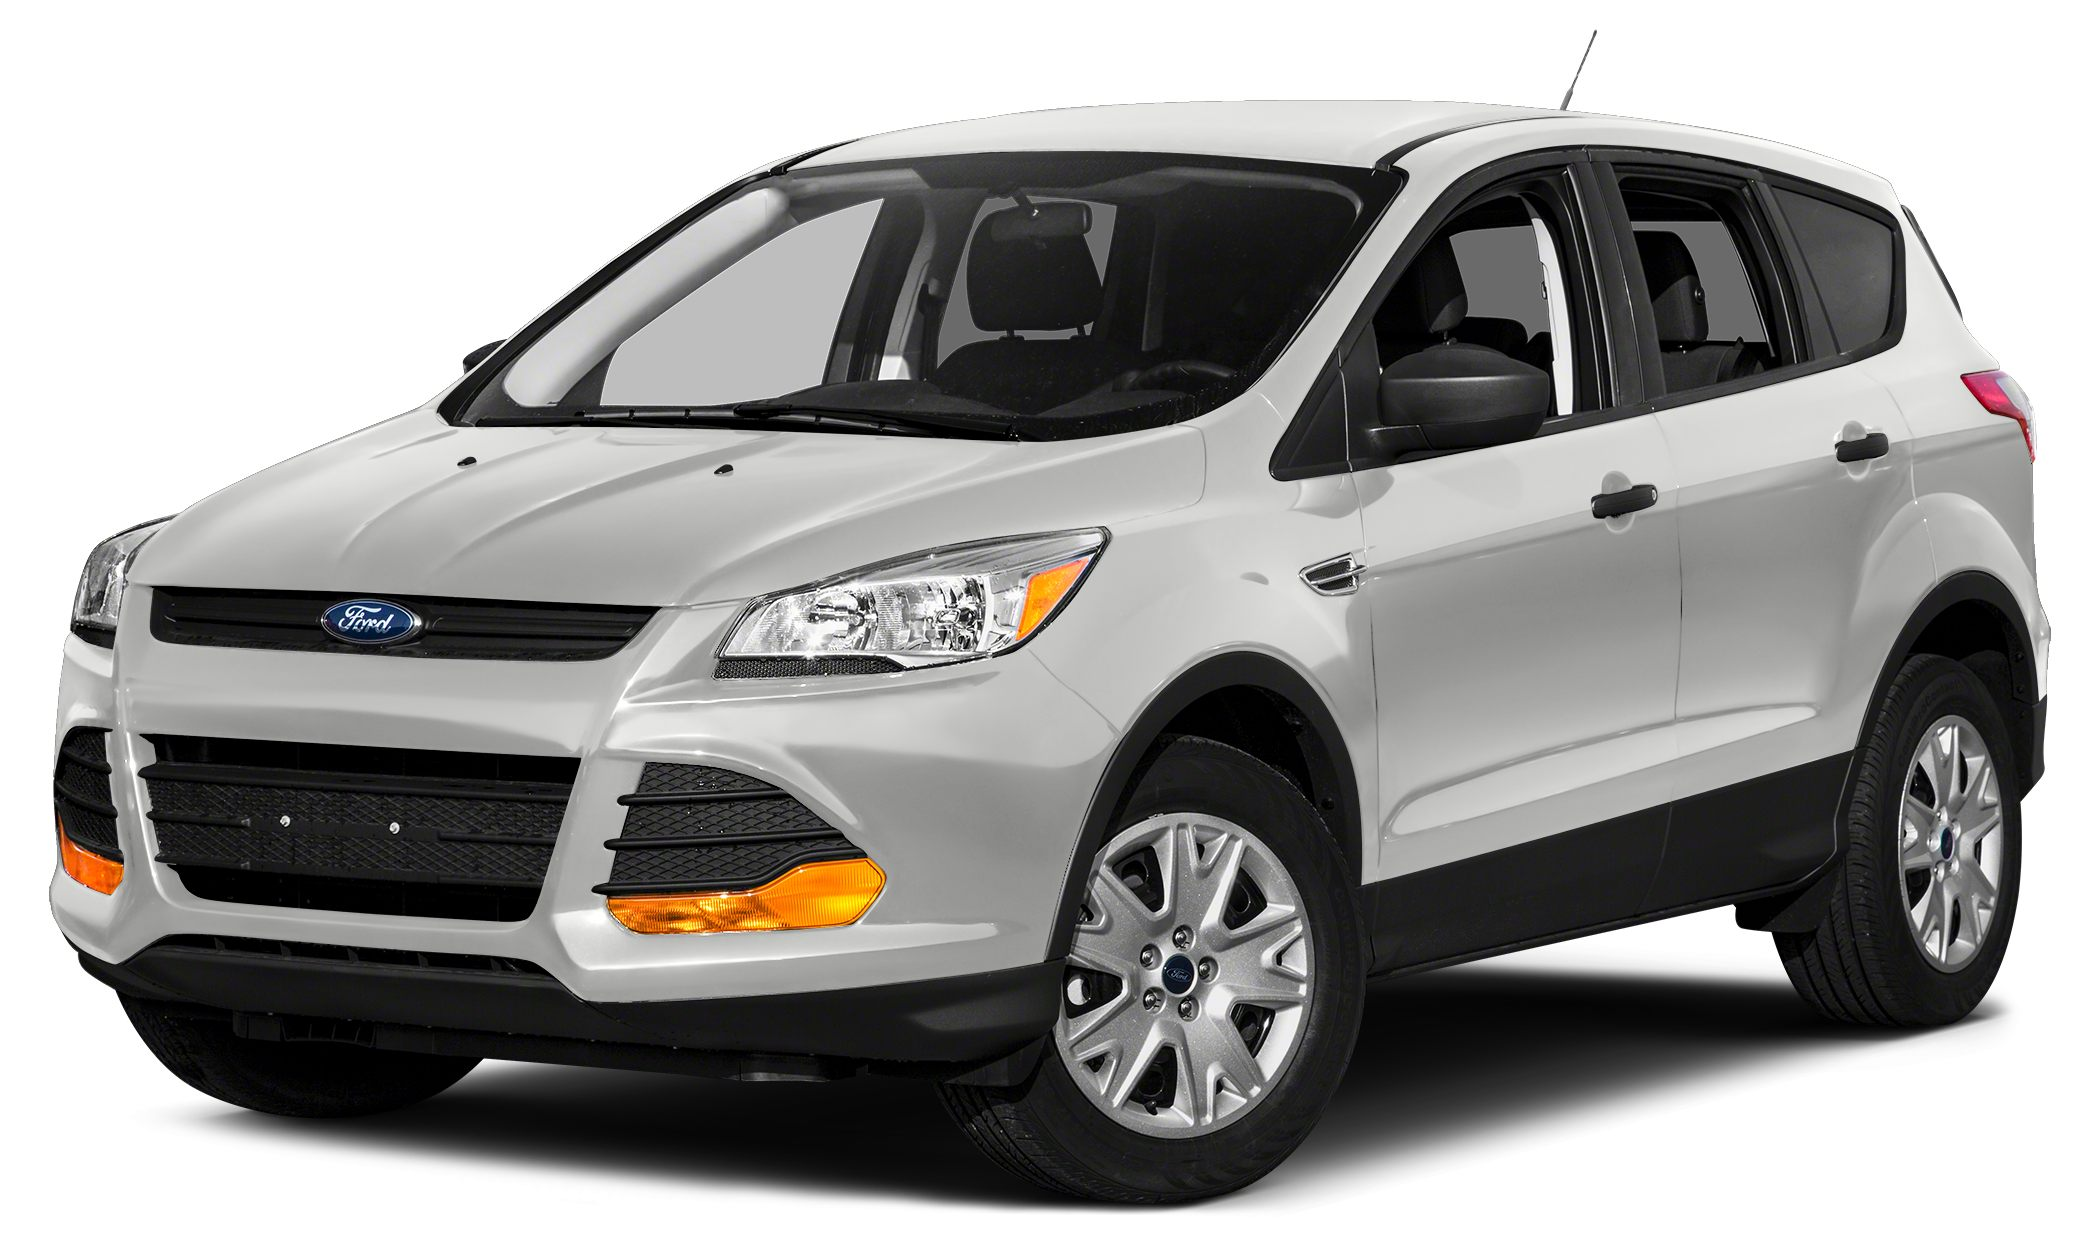 2014 Ford Escape S All Jim Hayes Inc used cars come with a 30day3000 mile warranty Unless noted